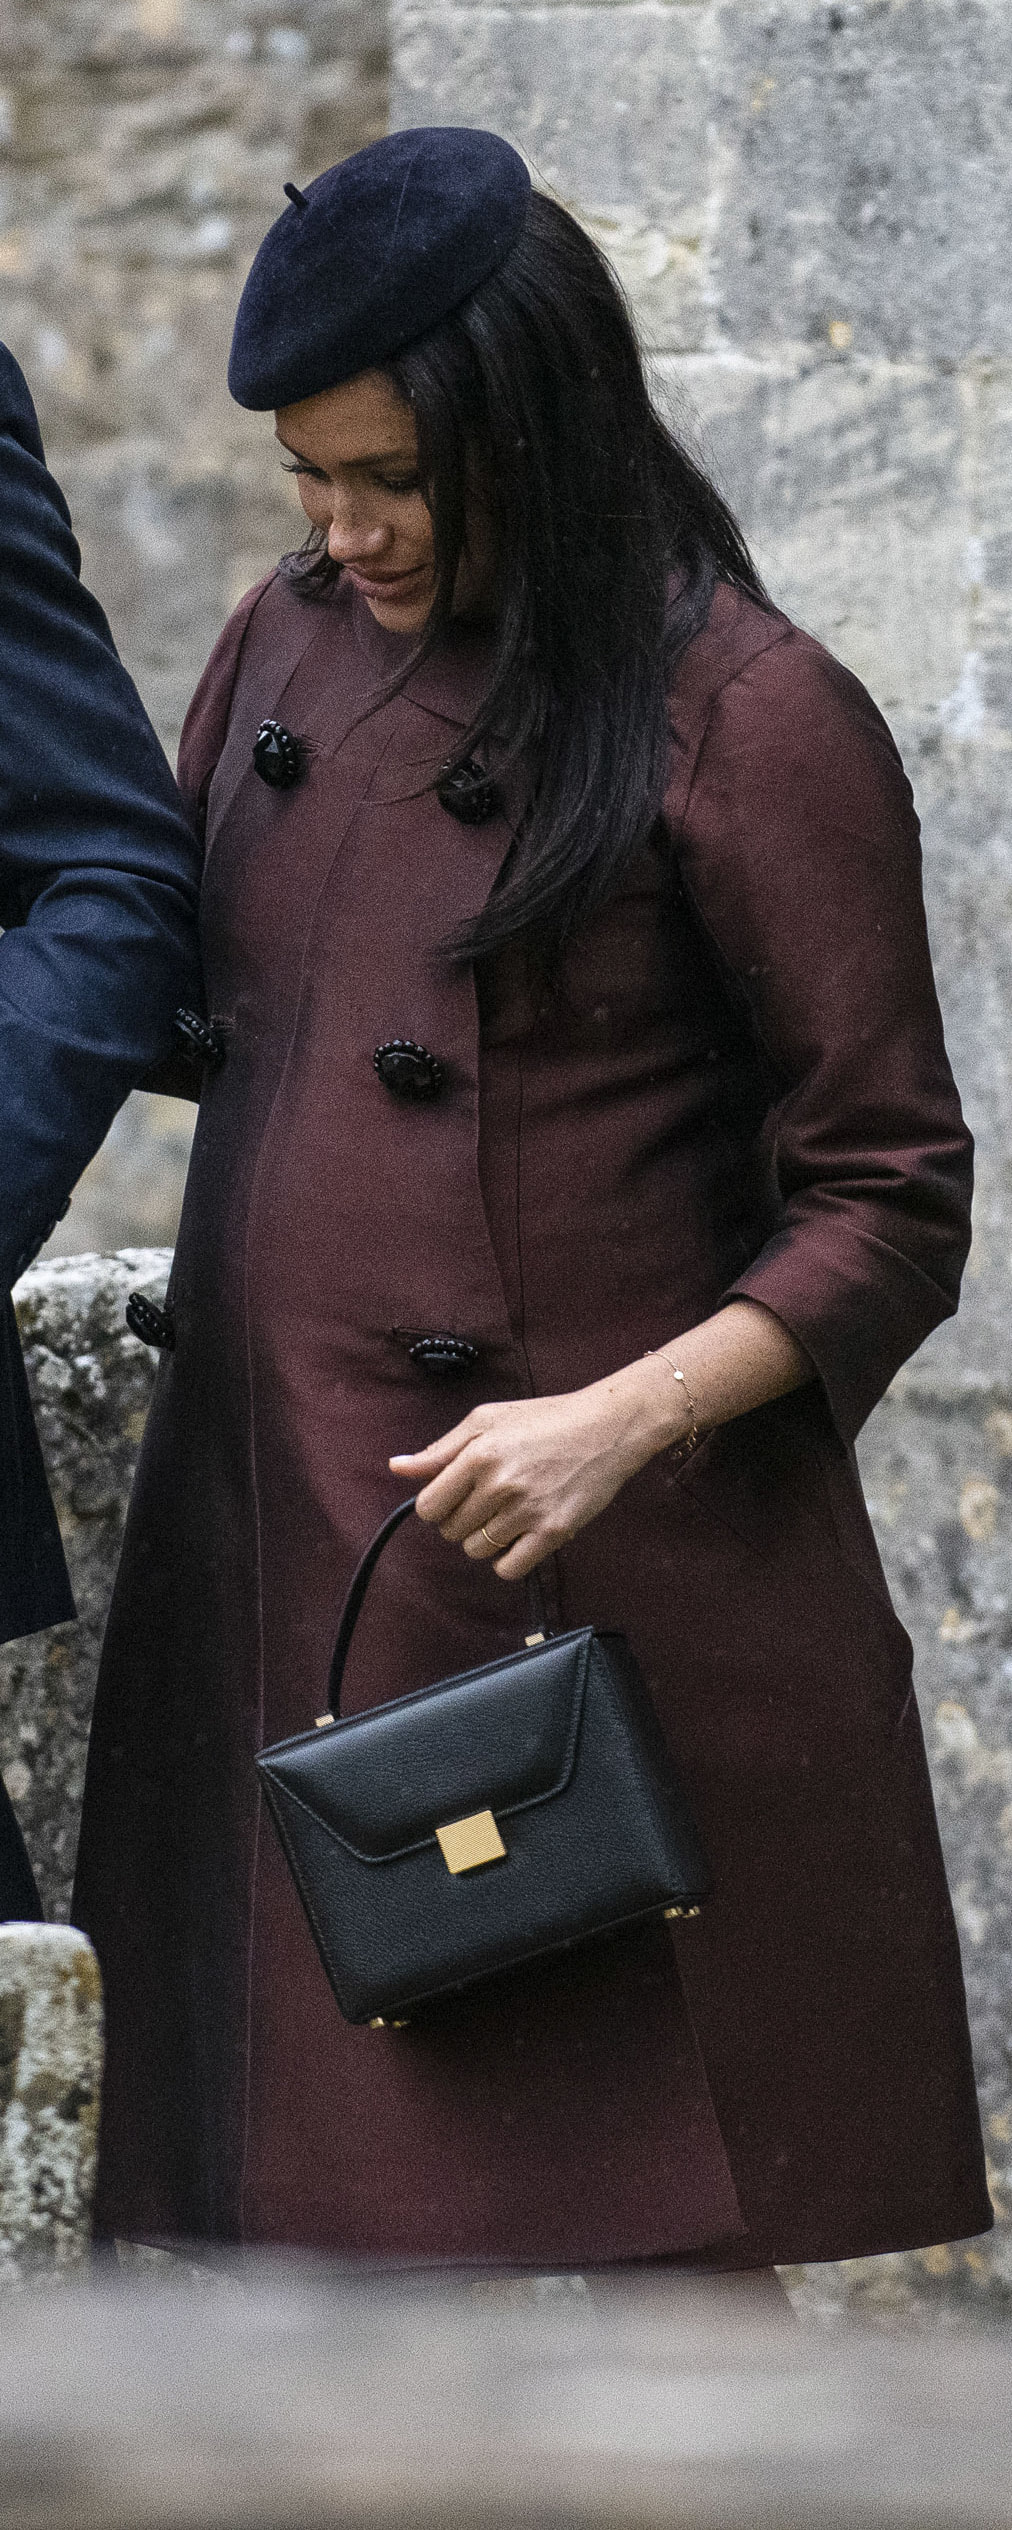 William Vintage 1960's Dior Brown Silk Coat as seen on Meghan Markle, the Duchess of Sussex